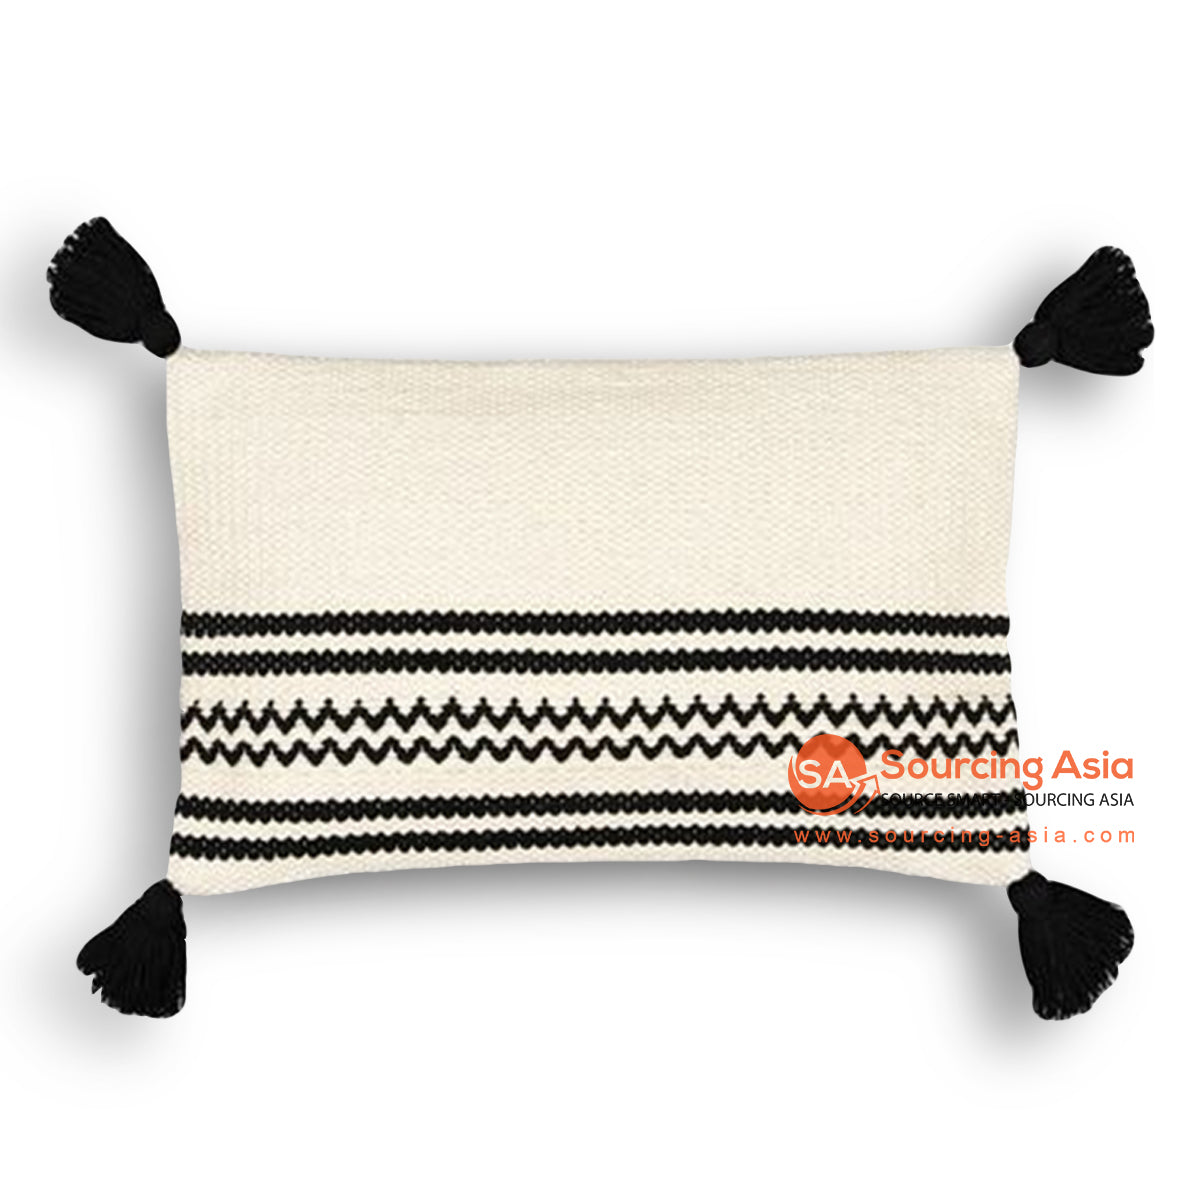 HIP004 LUMBAR COVER PILLOW WITH EMBROIDERY AND TASSELS 50 X 25 CM